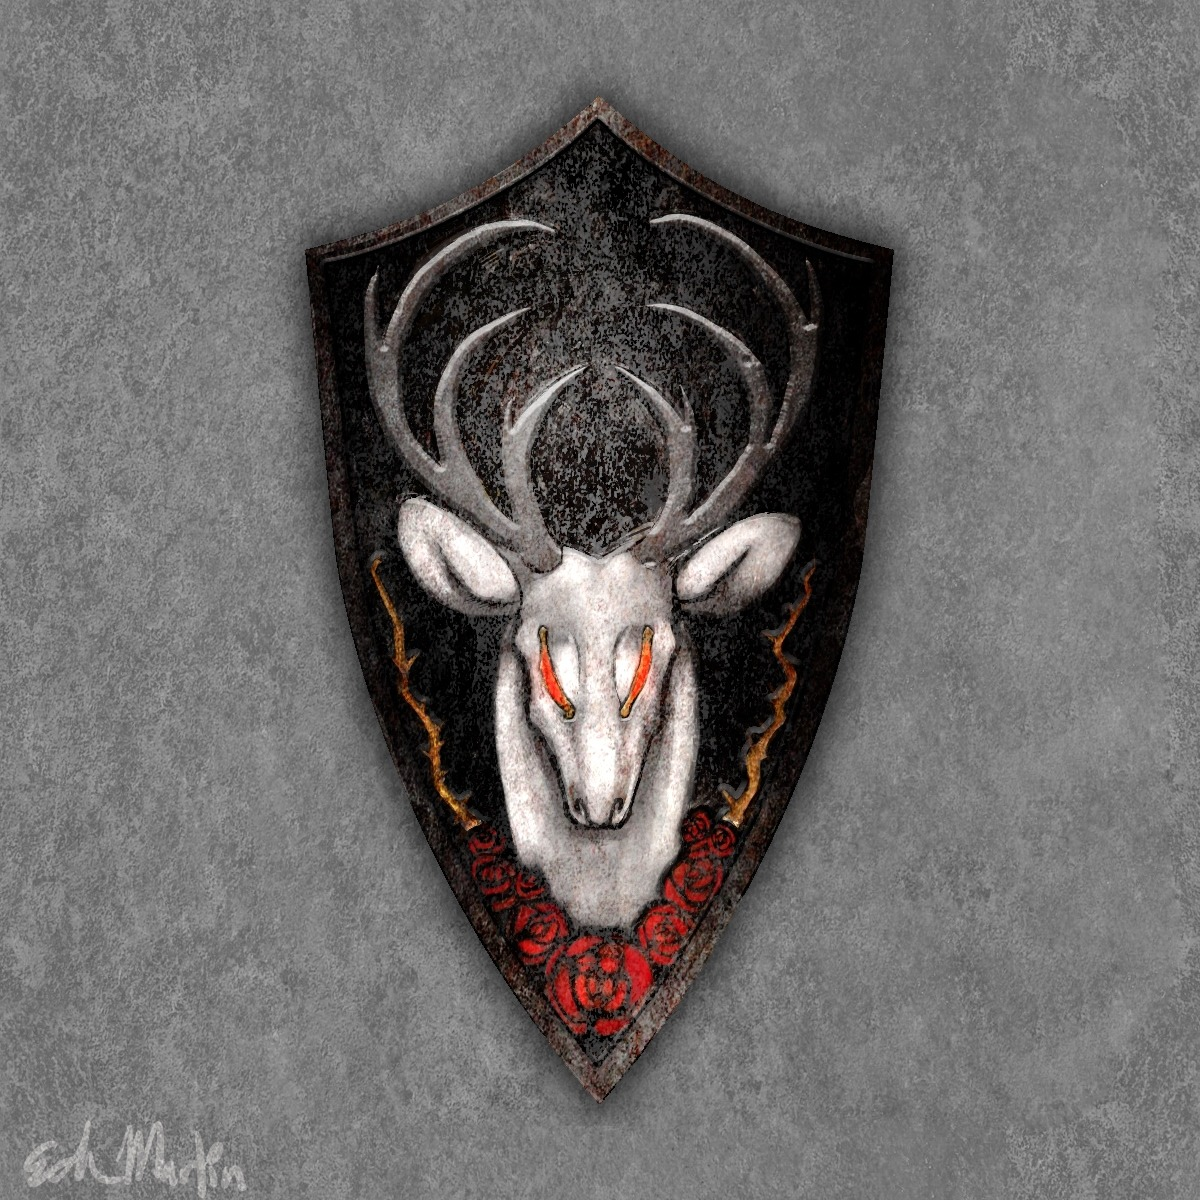 autumn-knight:  The Mantle of the White Stag is a Royal Knight's shield. Its last known carrier was The White Lady of Berenike. It bears the image of The White Stag, a legendary beast said to grant a wish to whoever could defeat it. An Ancient Knight of Berenike fought the Stag, though his shield was destroyed by the battle.  The knight muttered under his breath, unthinkingly wishing that he had a stronger shield. The Stag then vanished, only leaving behind this shield.   Like my shield? Vote for it Here! https://apps.facebook.com/darksoulsii/?gallery&action=view&id=3503